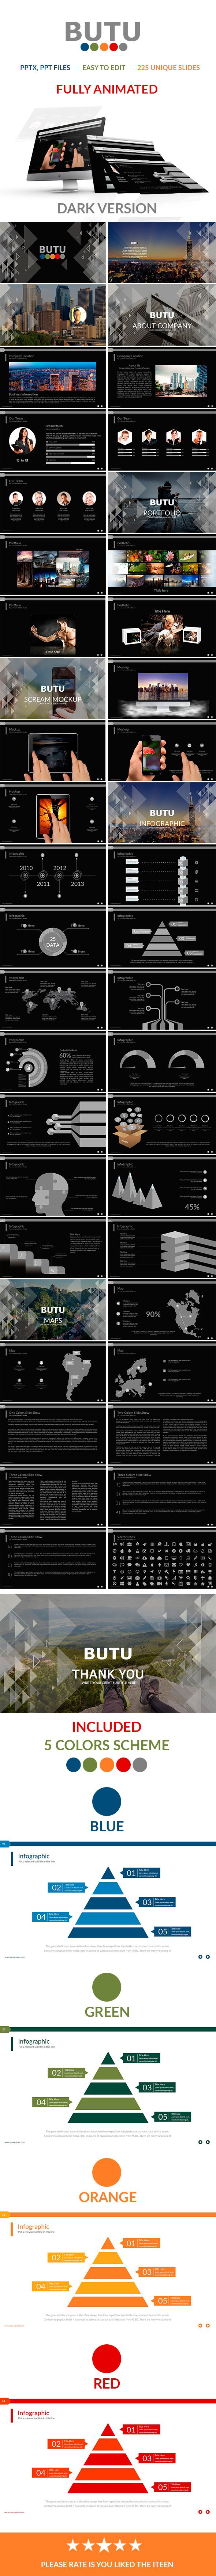 Butu V.2 Powerpoint Presentation (PowerPoint Templates)